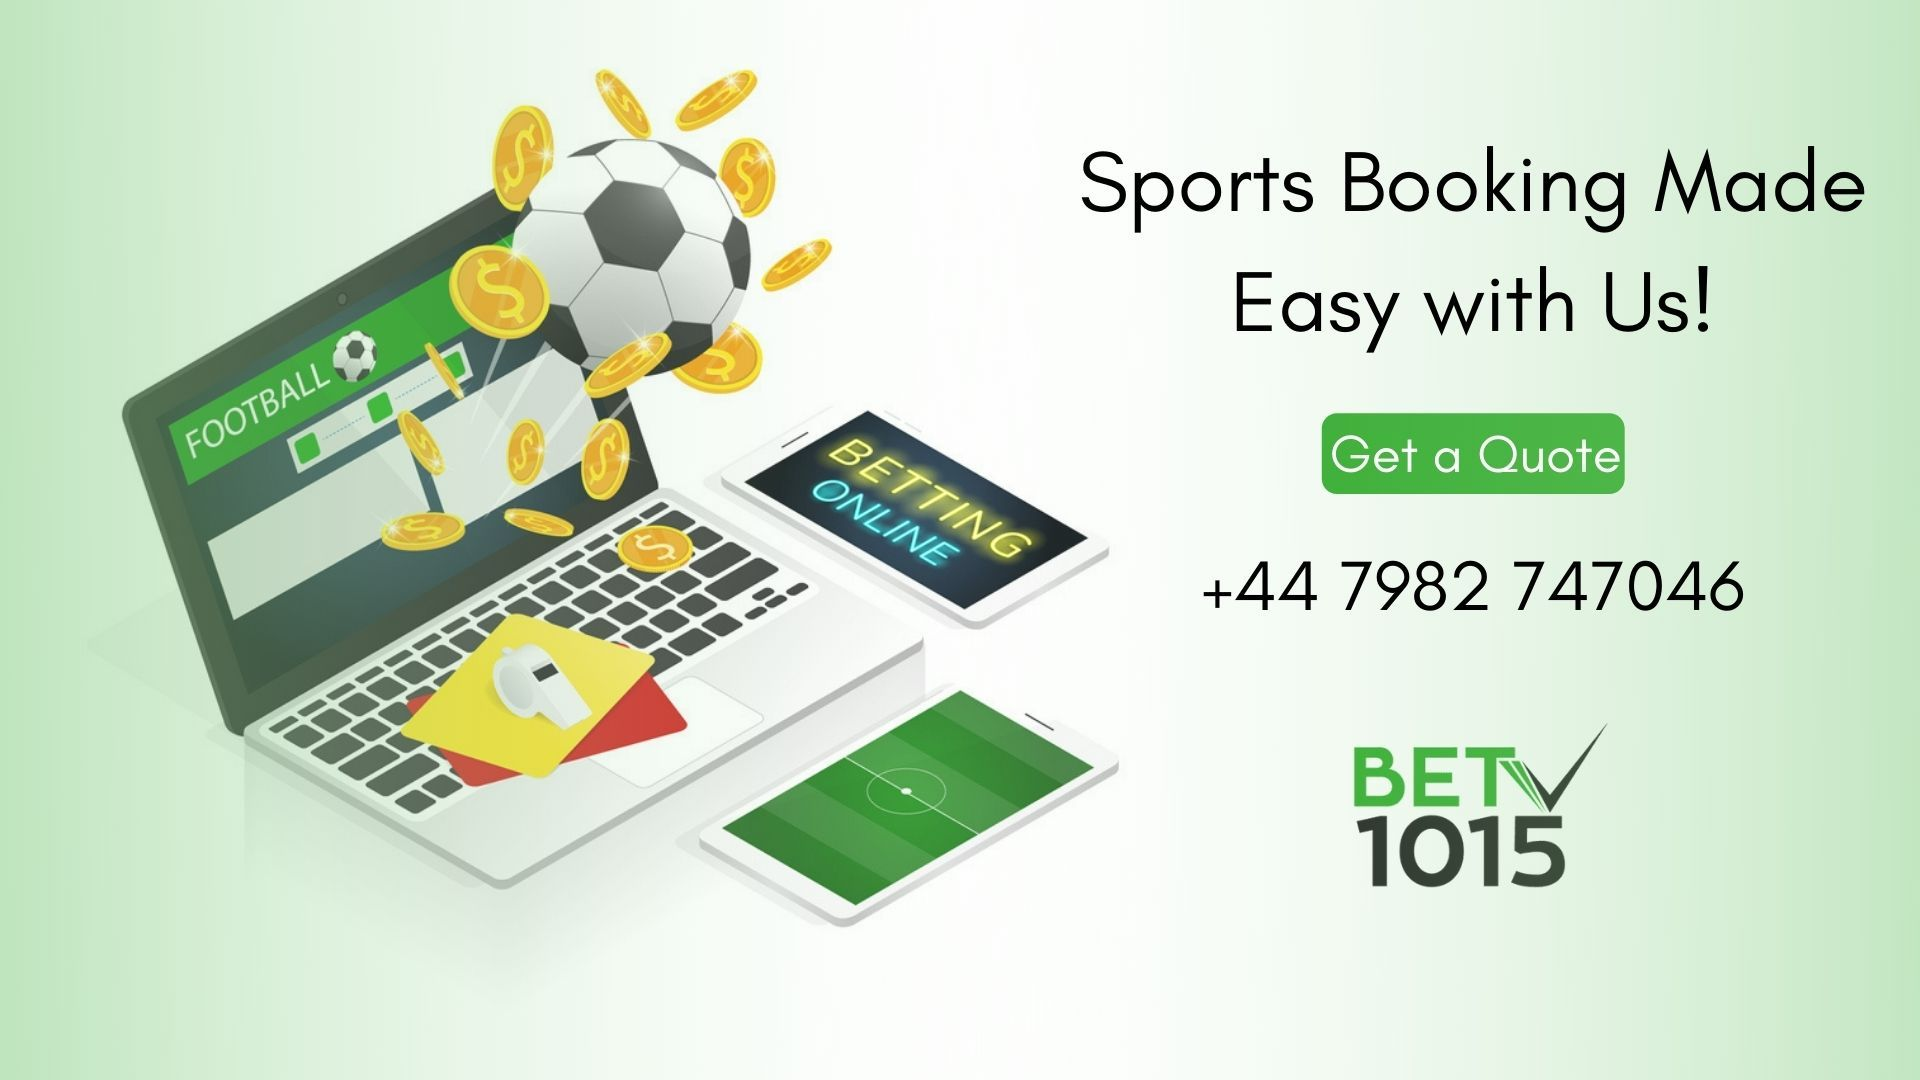 Online Sports Betting Sites in 2020 | Football predictions, Sports website,  Free football